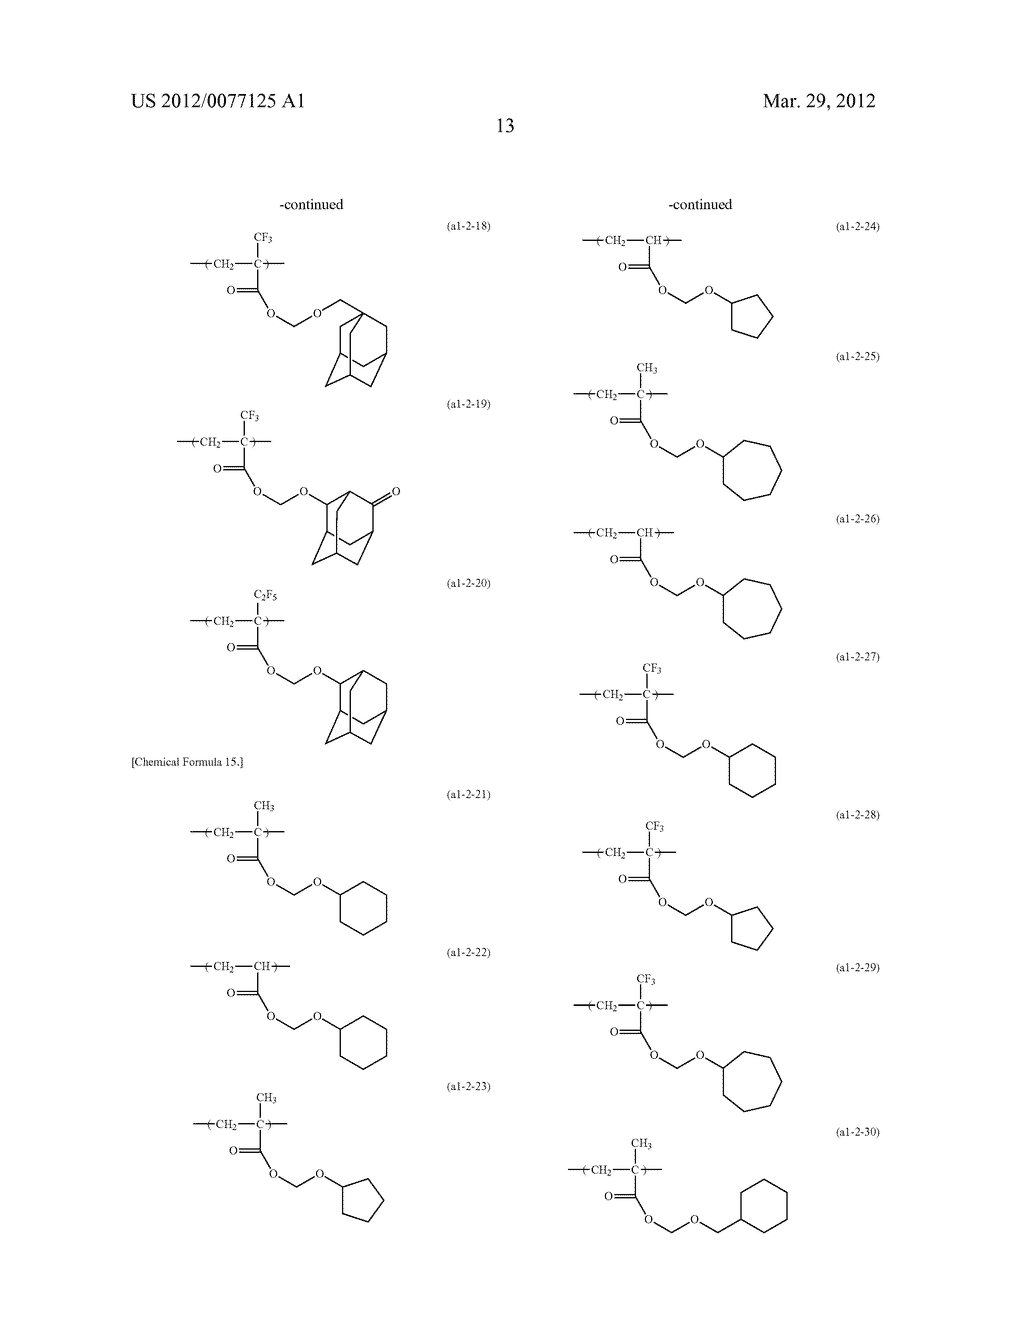 RESIST COMPOSITION FOR IMMERSION EXPOSURE, METHOD OF FORMING RESIST     PATTERN USING THE SAME, AND FLUORINE-CONTAINING COMPOUND - diagram, schematic, and image 15